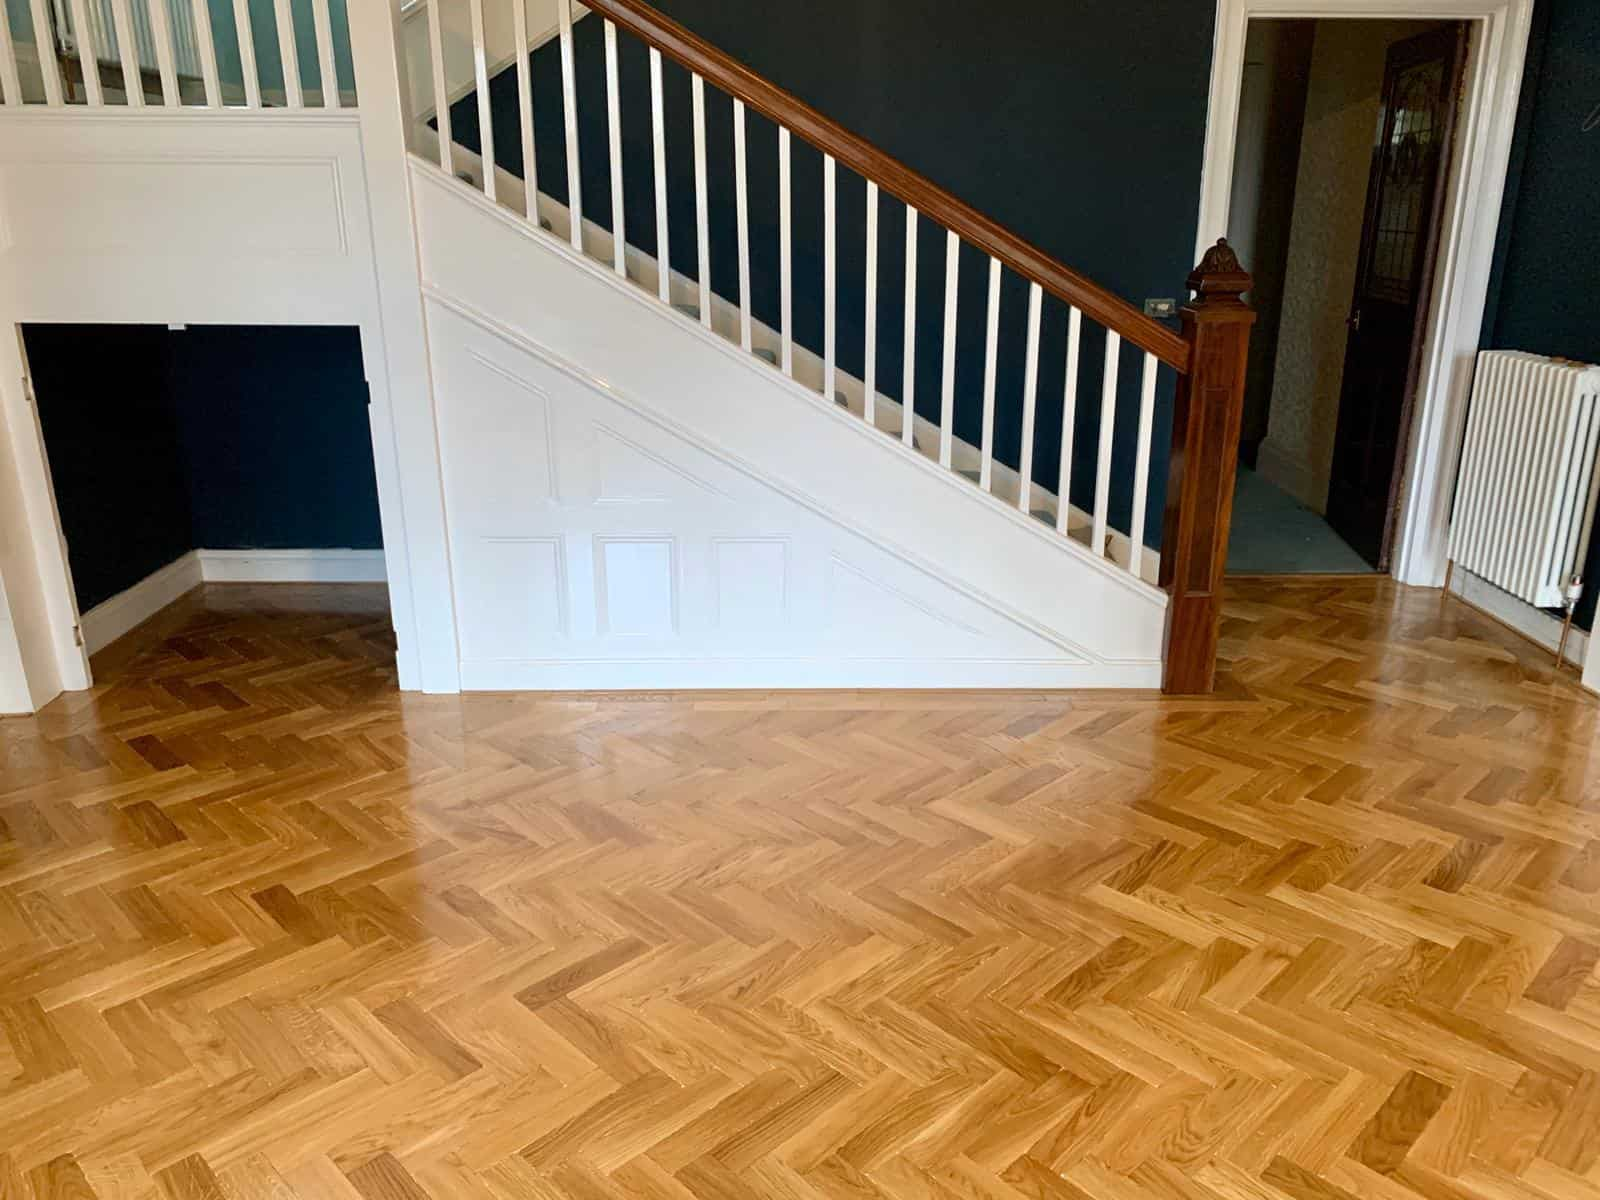 Tumbled Oak Parquet Flooring for a Home with Kids & Pets 4